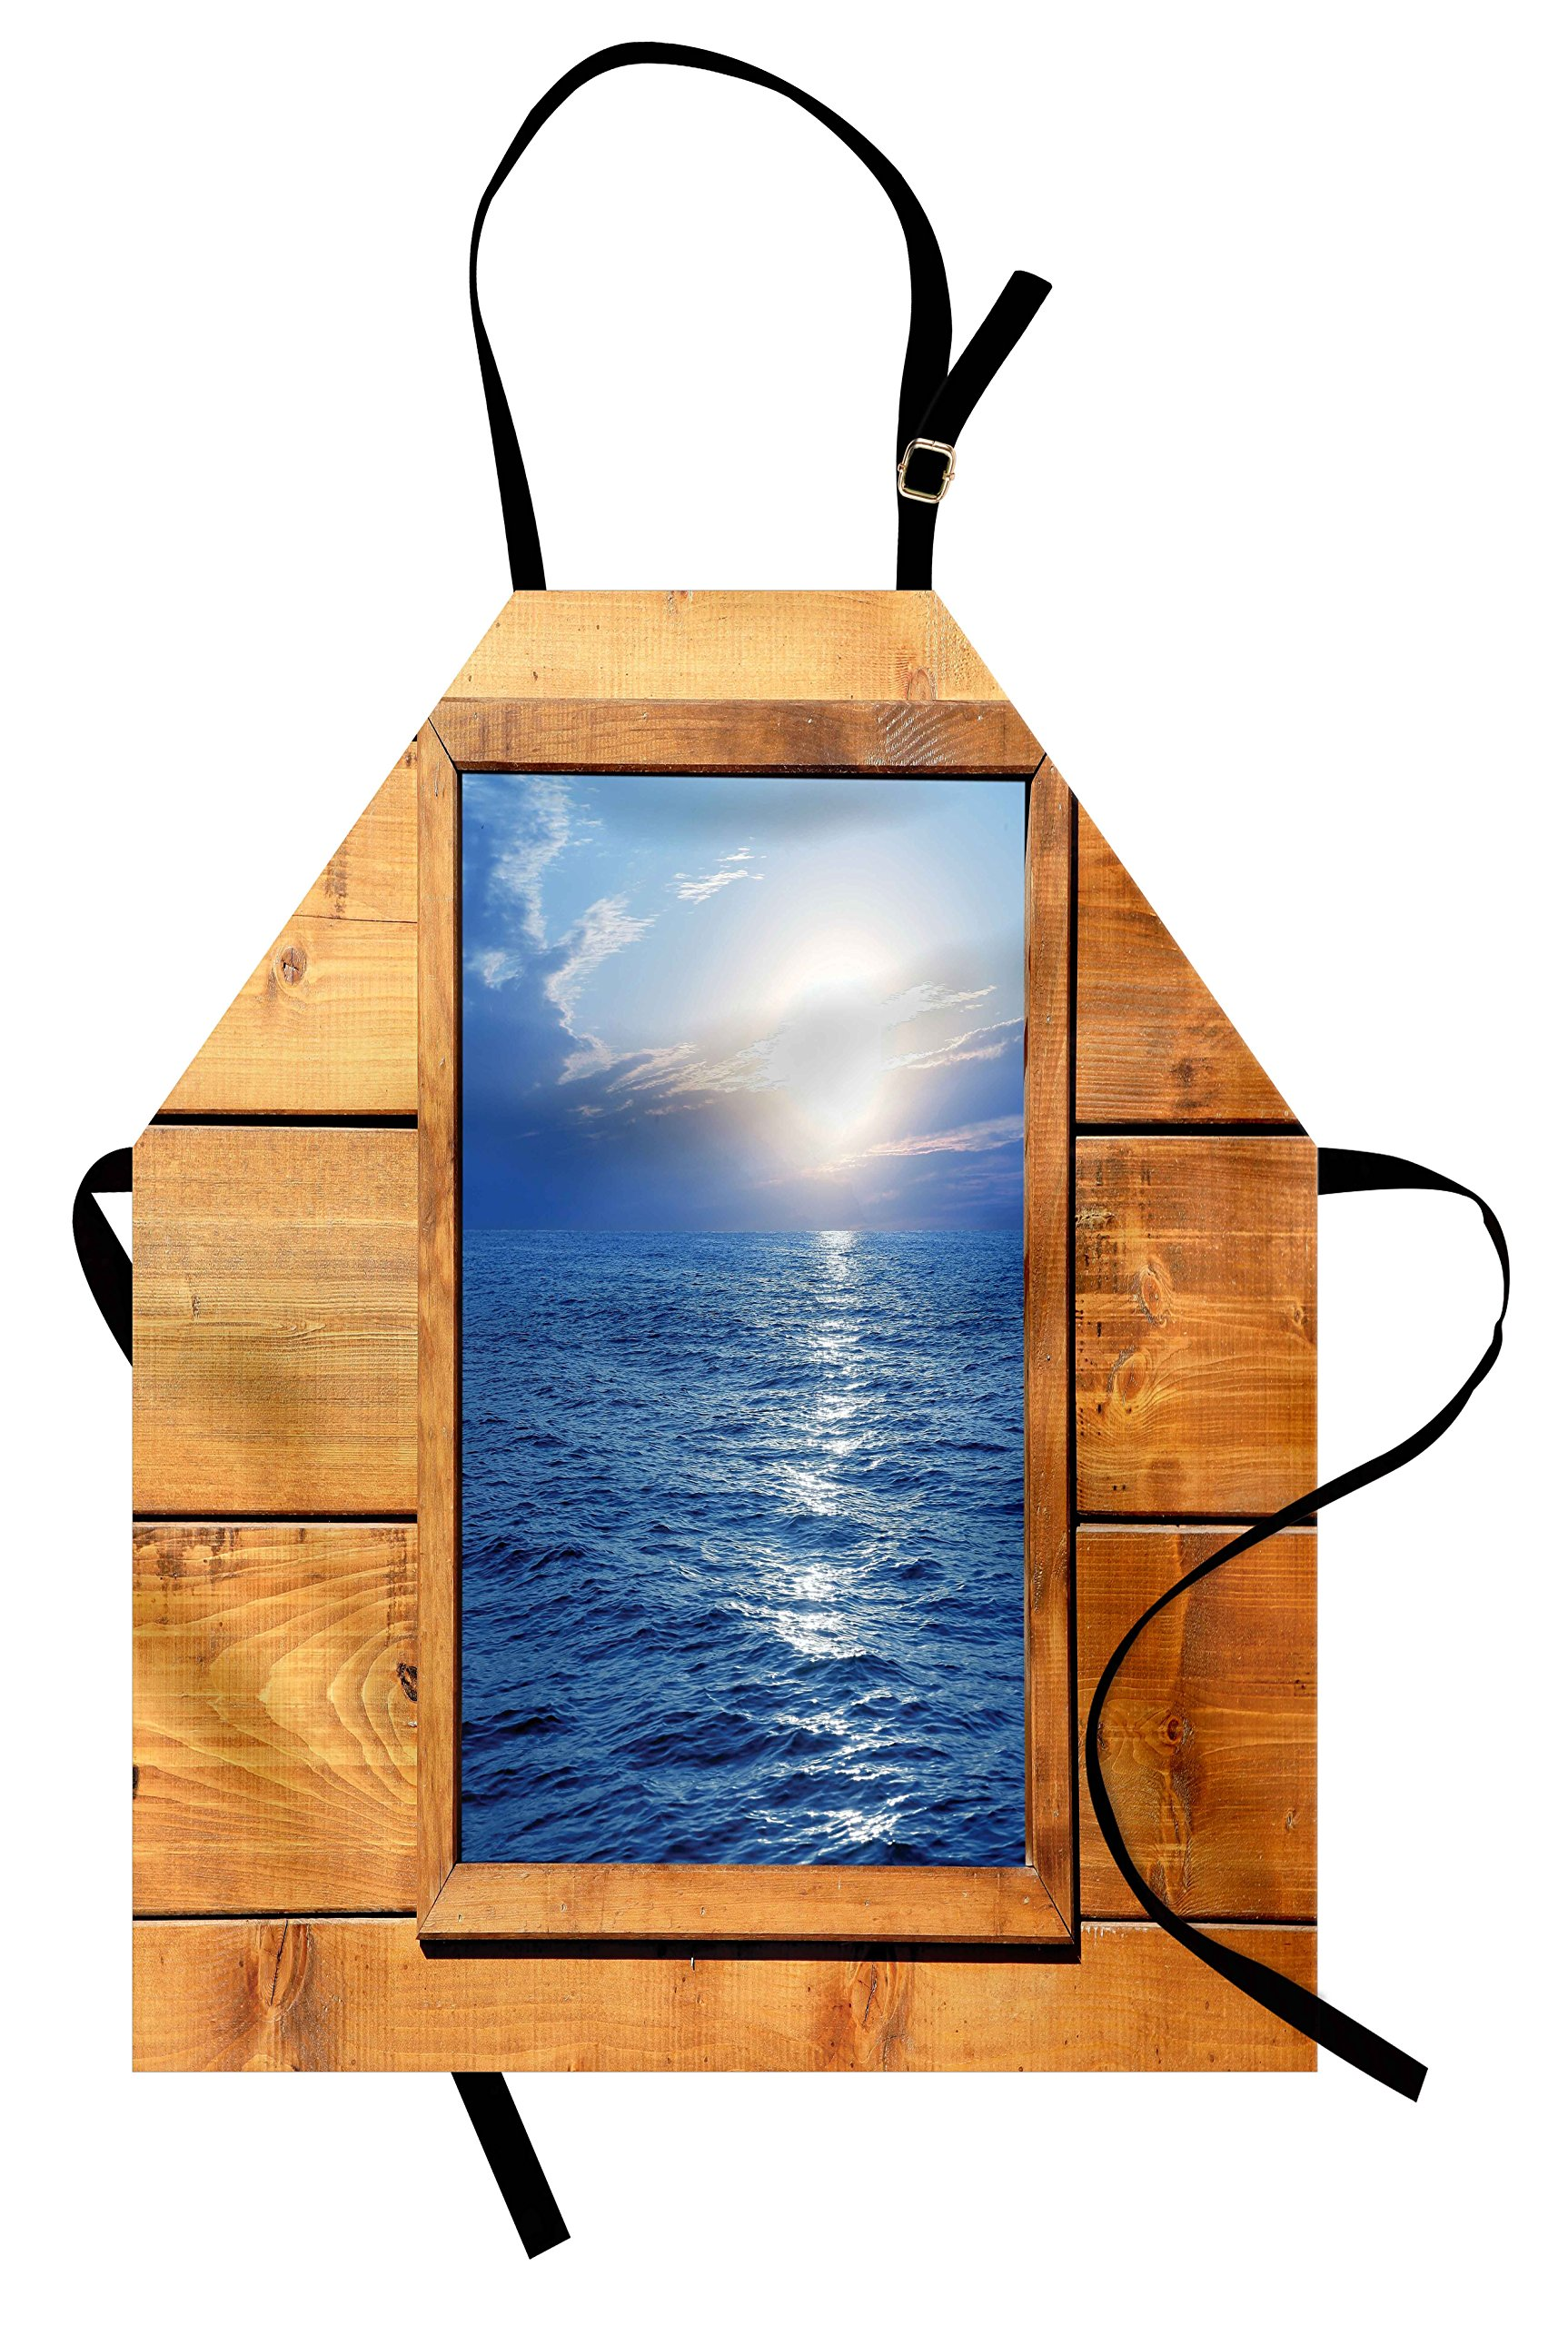 Lunarable Rustic Apron, Window Sea View From Wooden Oak square Frame Room Sunrise Sun Rays Rustic, Unisex Kitchen Bib Apron with Adjustable Neck for Cooking Baking Gardening, Blue Pale Caramel